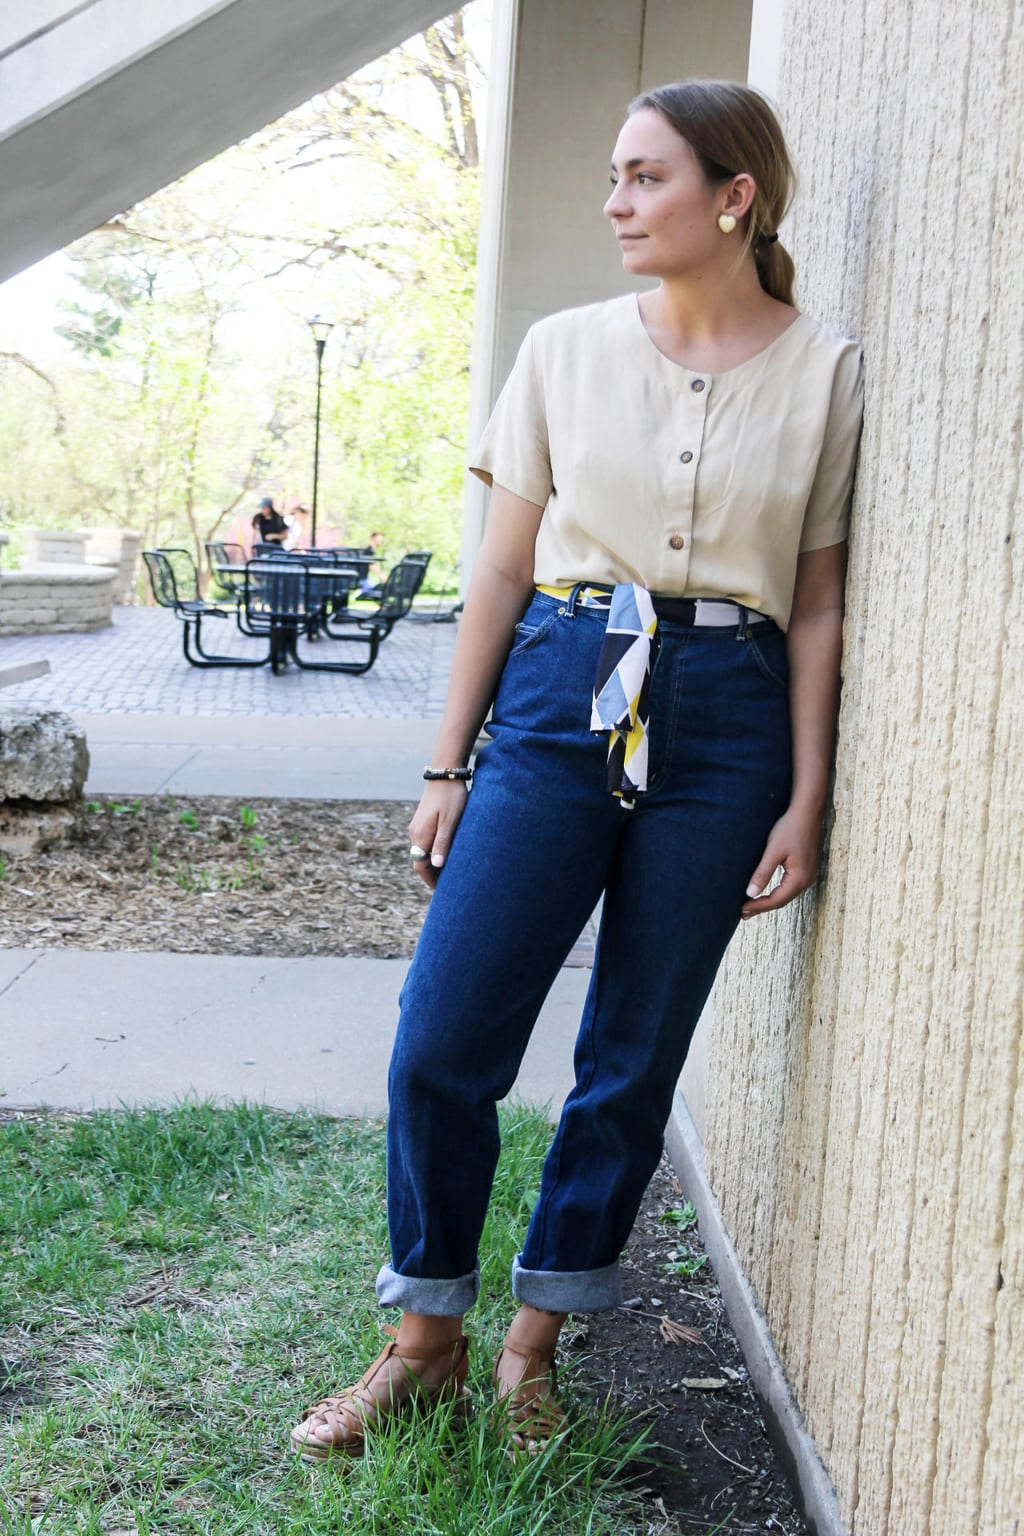 Emilee, a student at Kansas State University, wears a pale yellow scoop neck button-up short sleeve top with brown buttons, high-waisted deep blue denim jeans, a yellow, blue, and black vintage scarf tied as a belt, brown woven sneakers, and heart-shaped earrings.